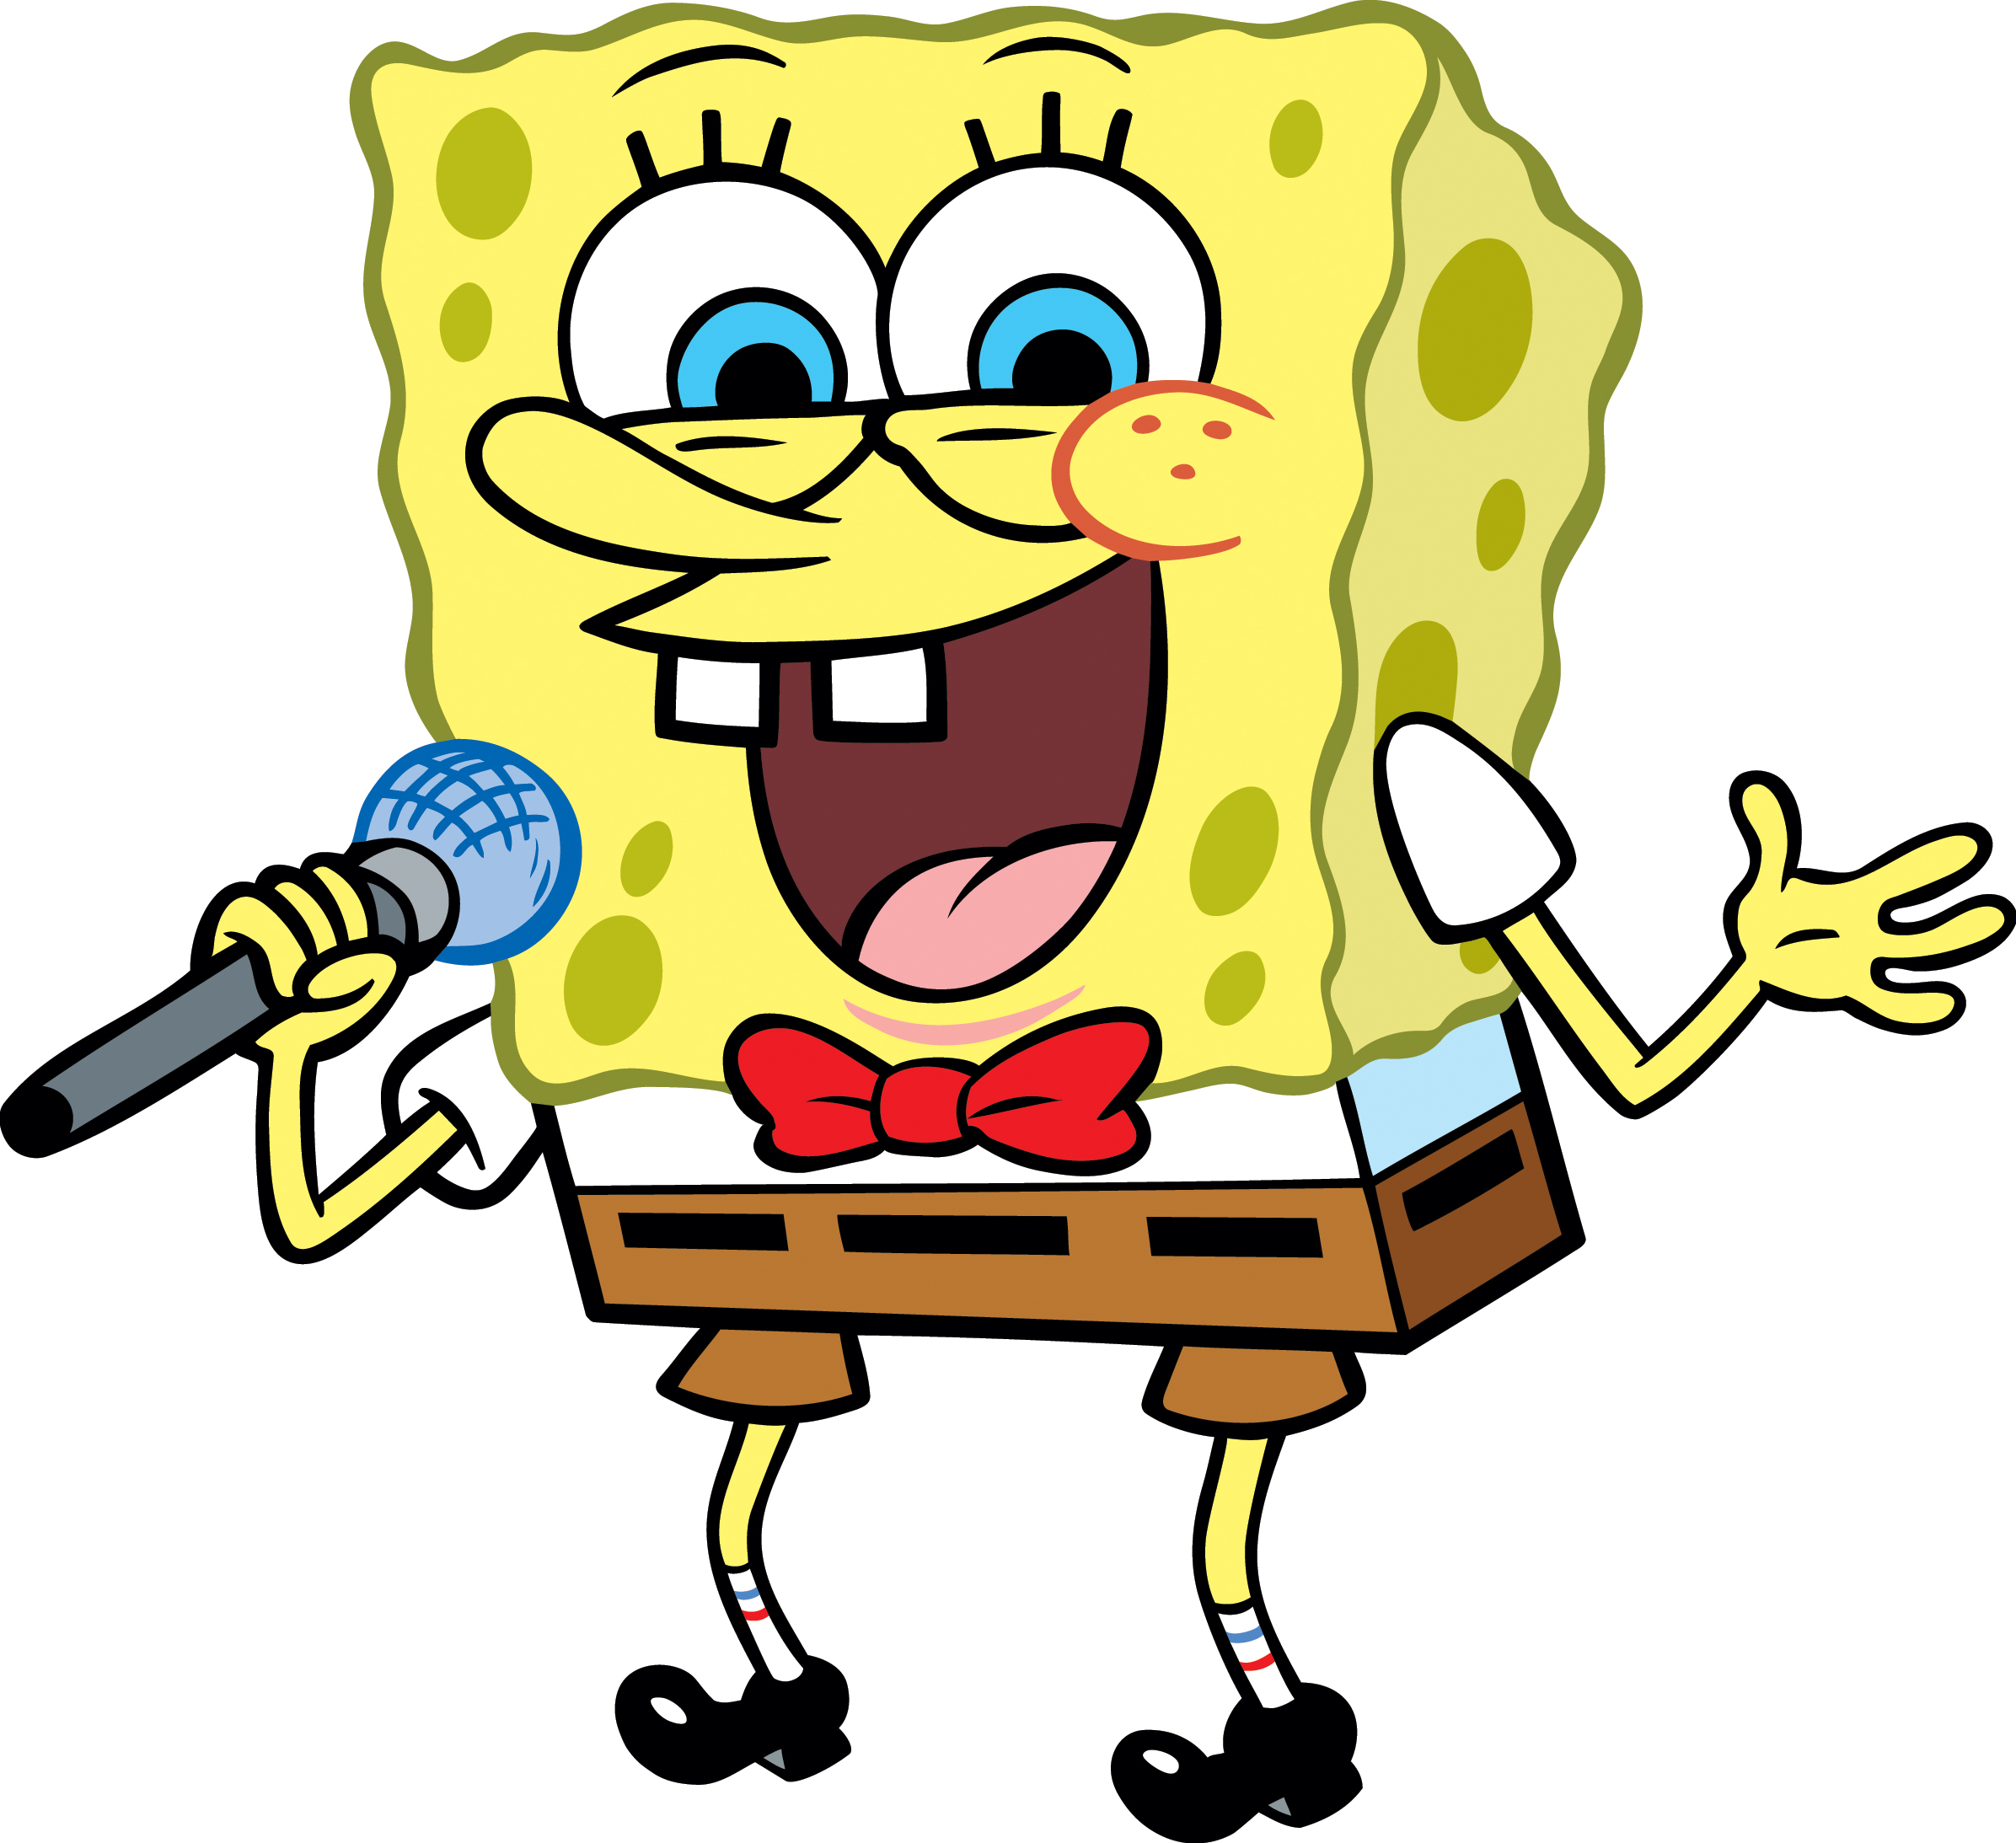 Spongebob Squarepants Kenny Stills Wikipedia